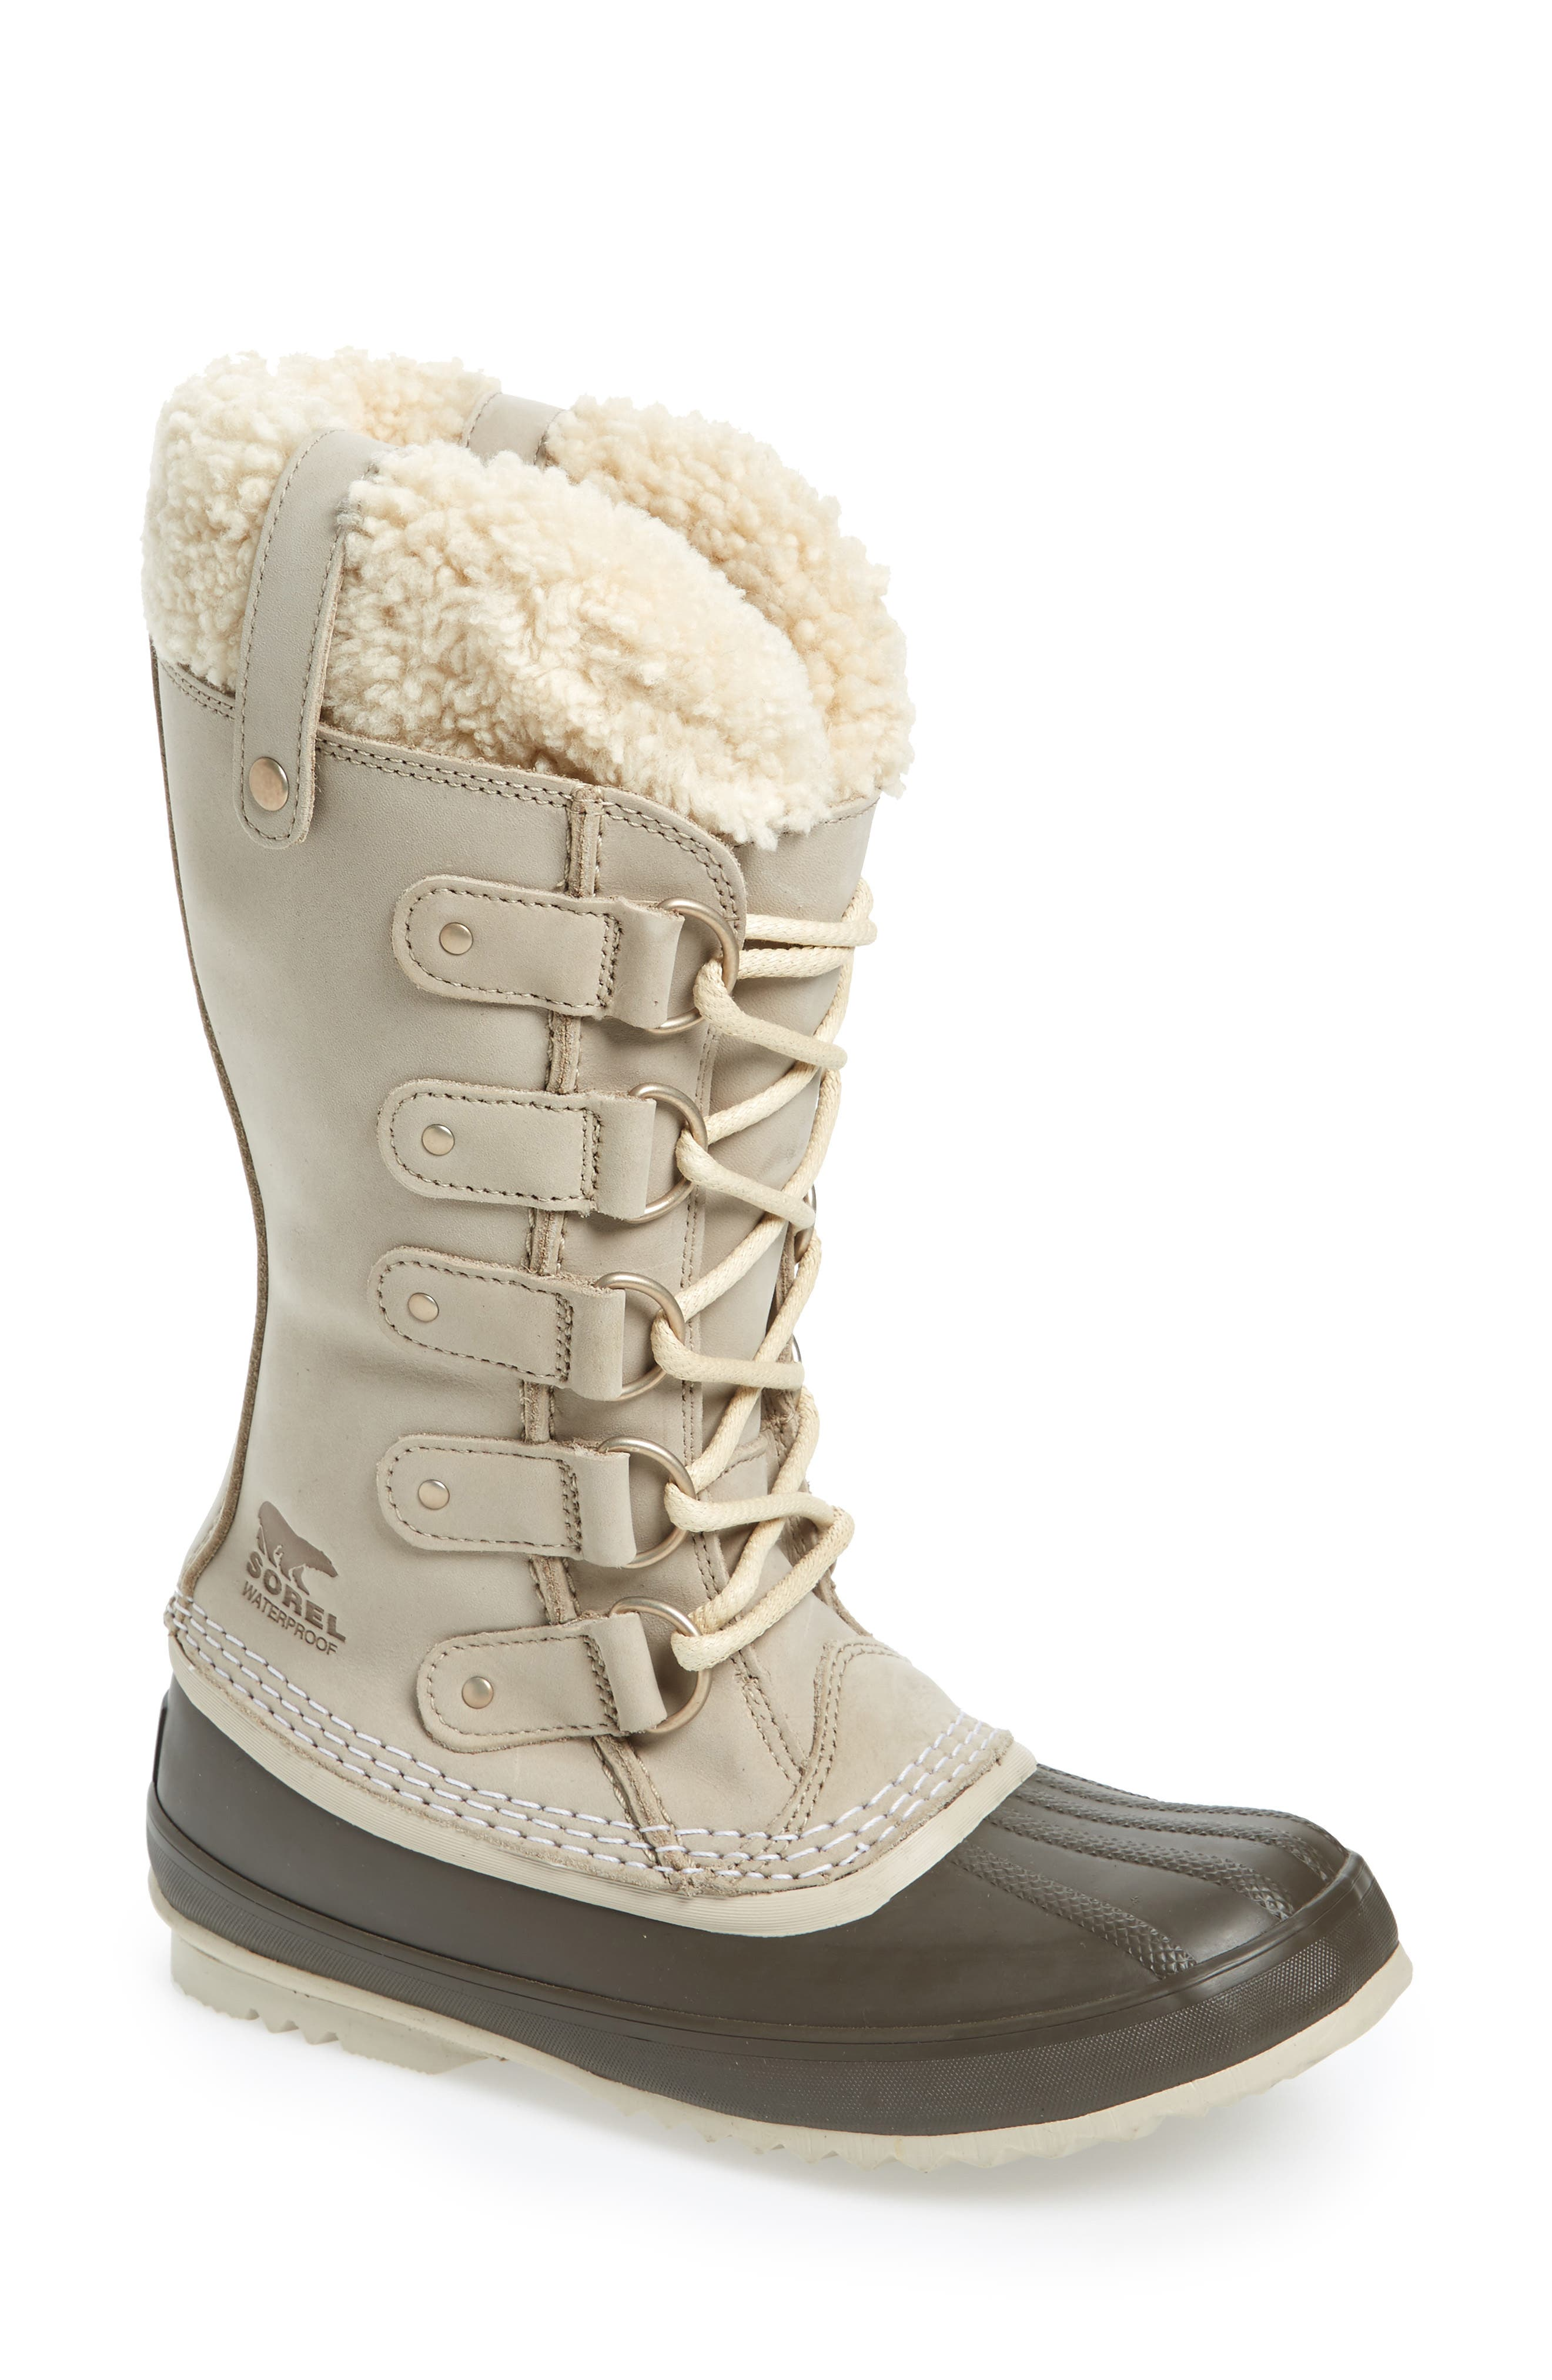 Joan of Arctic<sup>™</sup> Lux Waterproof Winter Boot with Genuine  Shearling Cuff,                         Main,                         color, 271